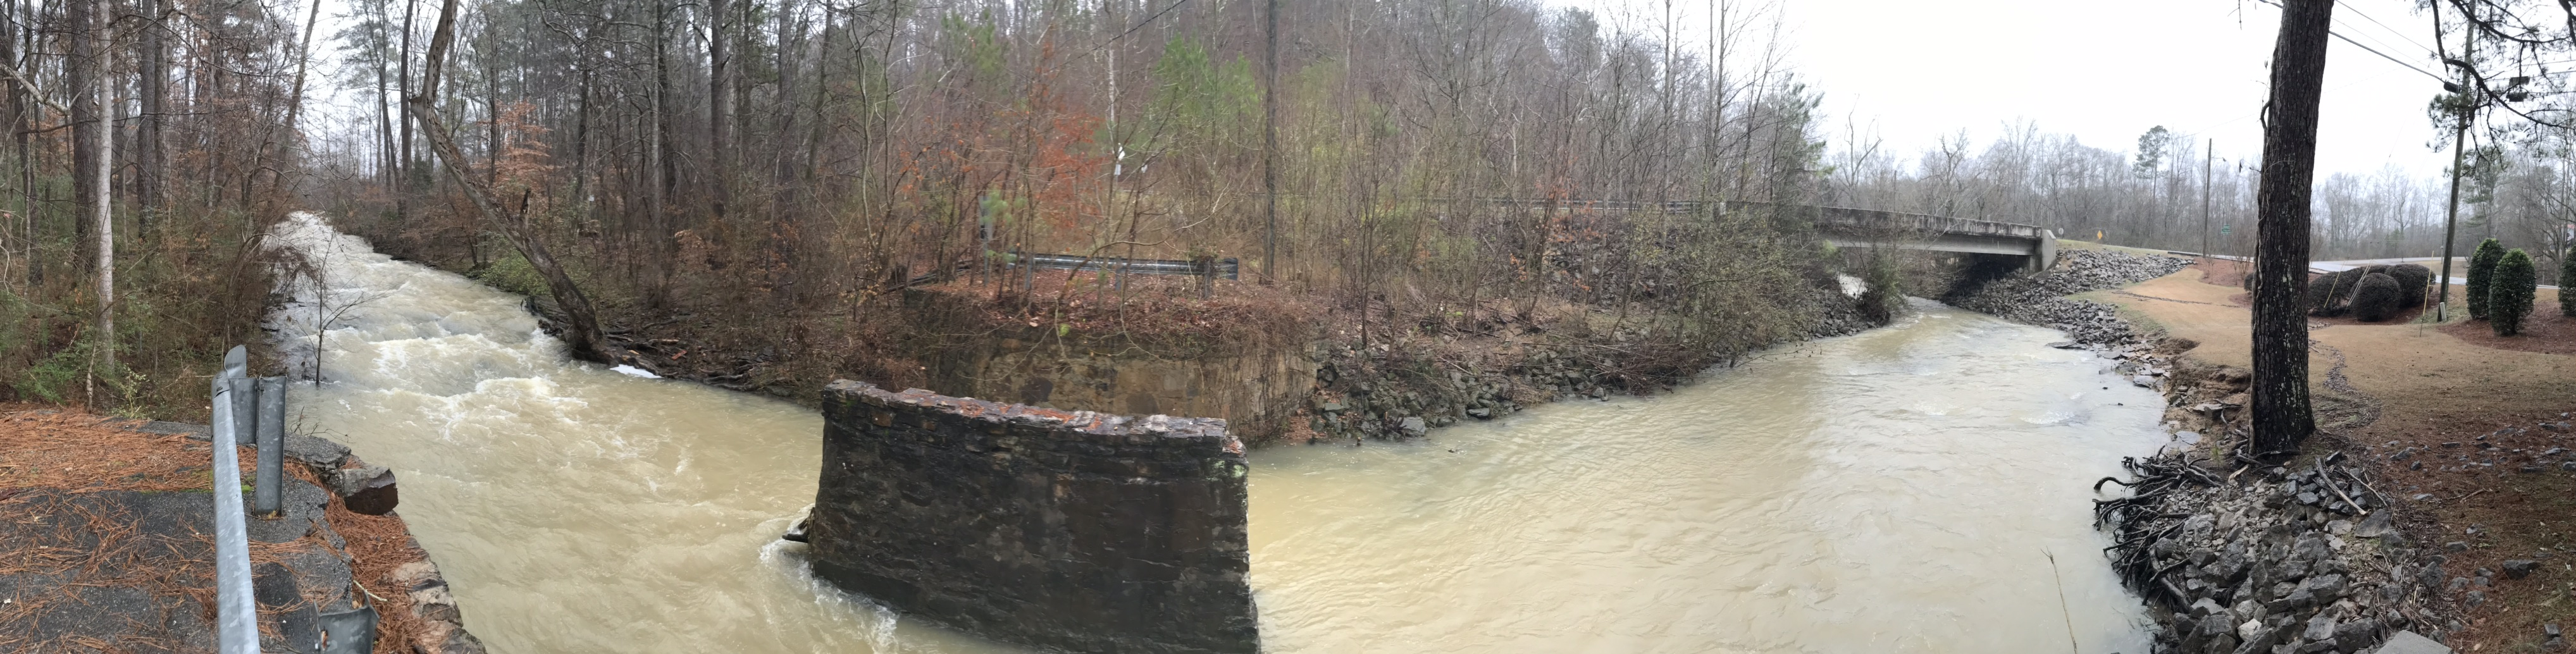 Creek running from Windsong Lake to Cahaba River